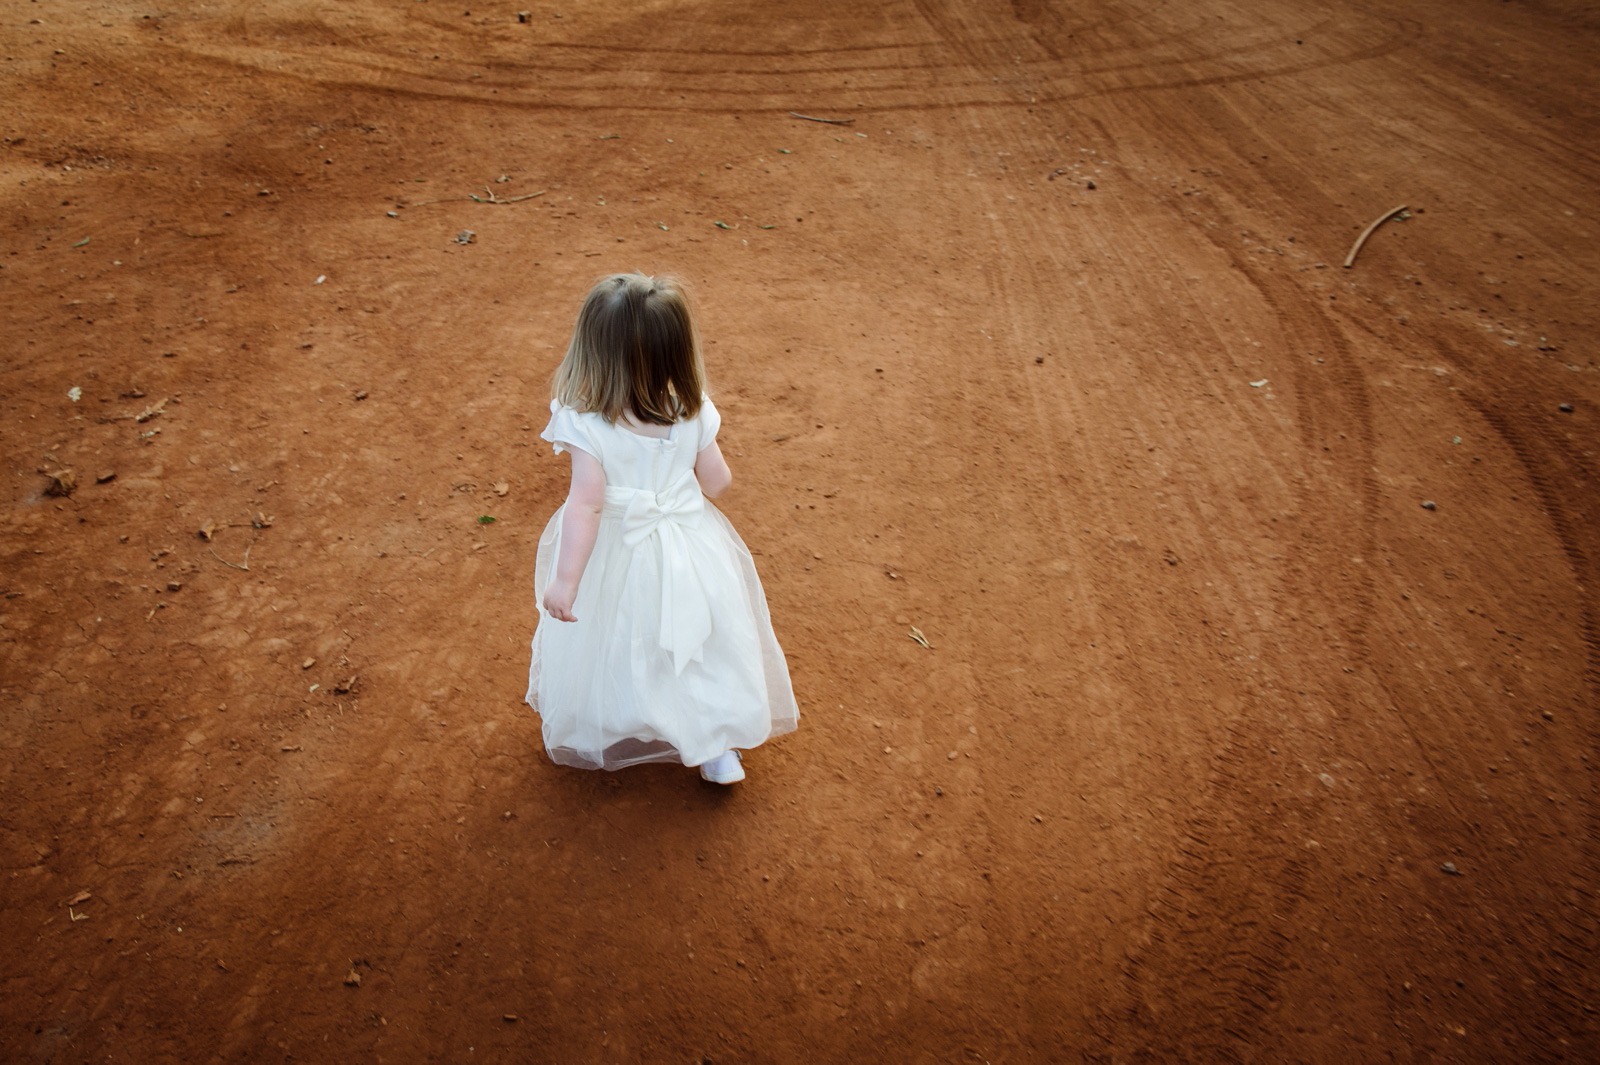 Cute girl on dirt road